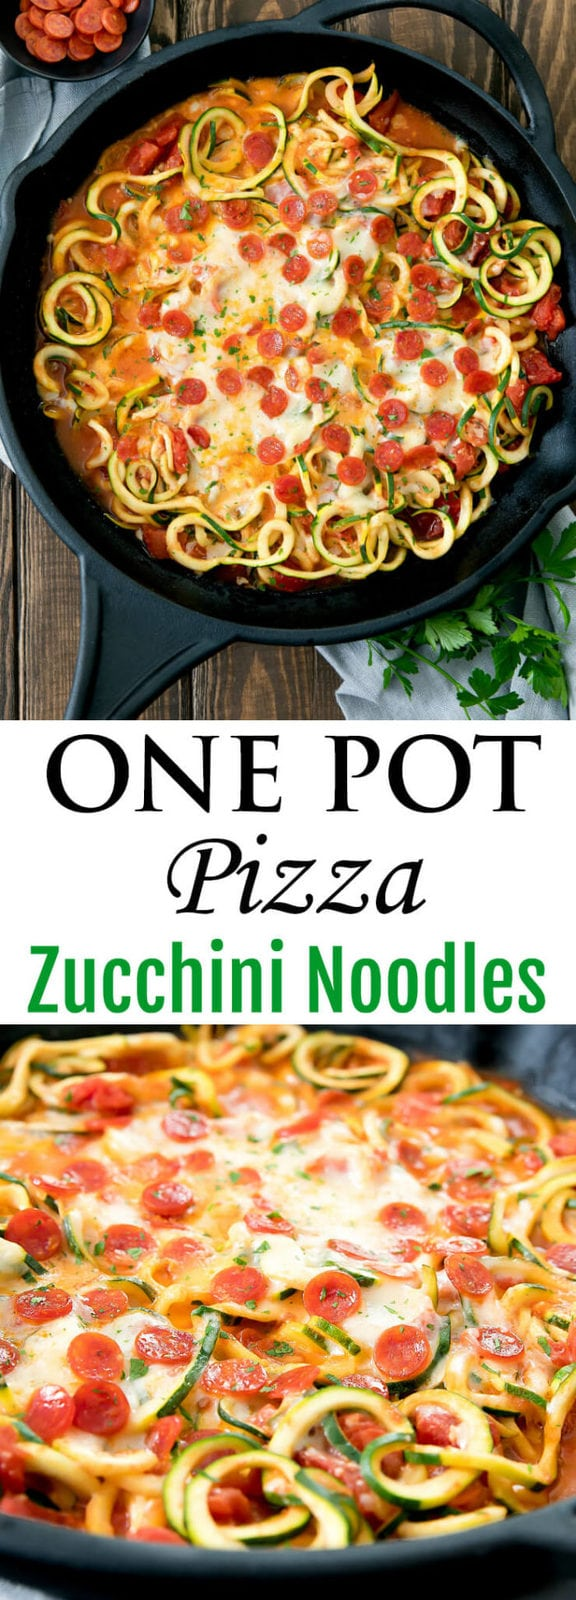 One Pot Pizza Zucchini Noodles